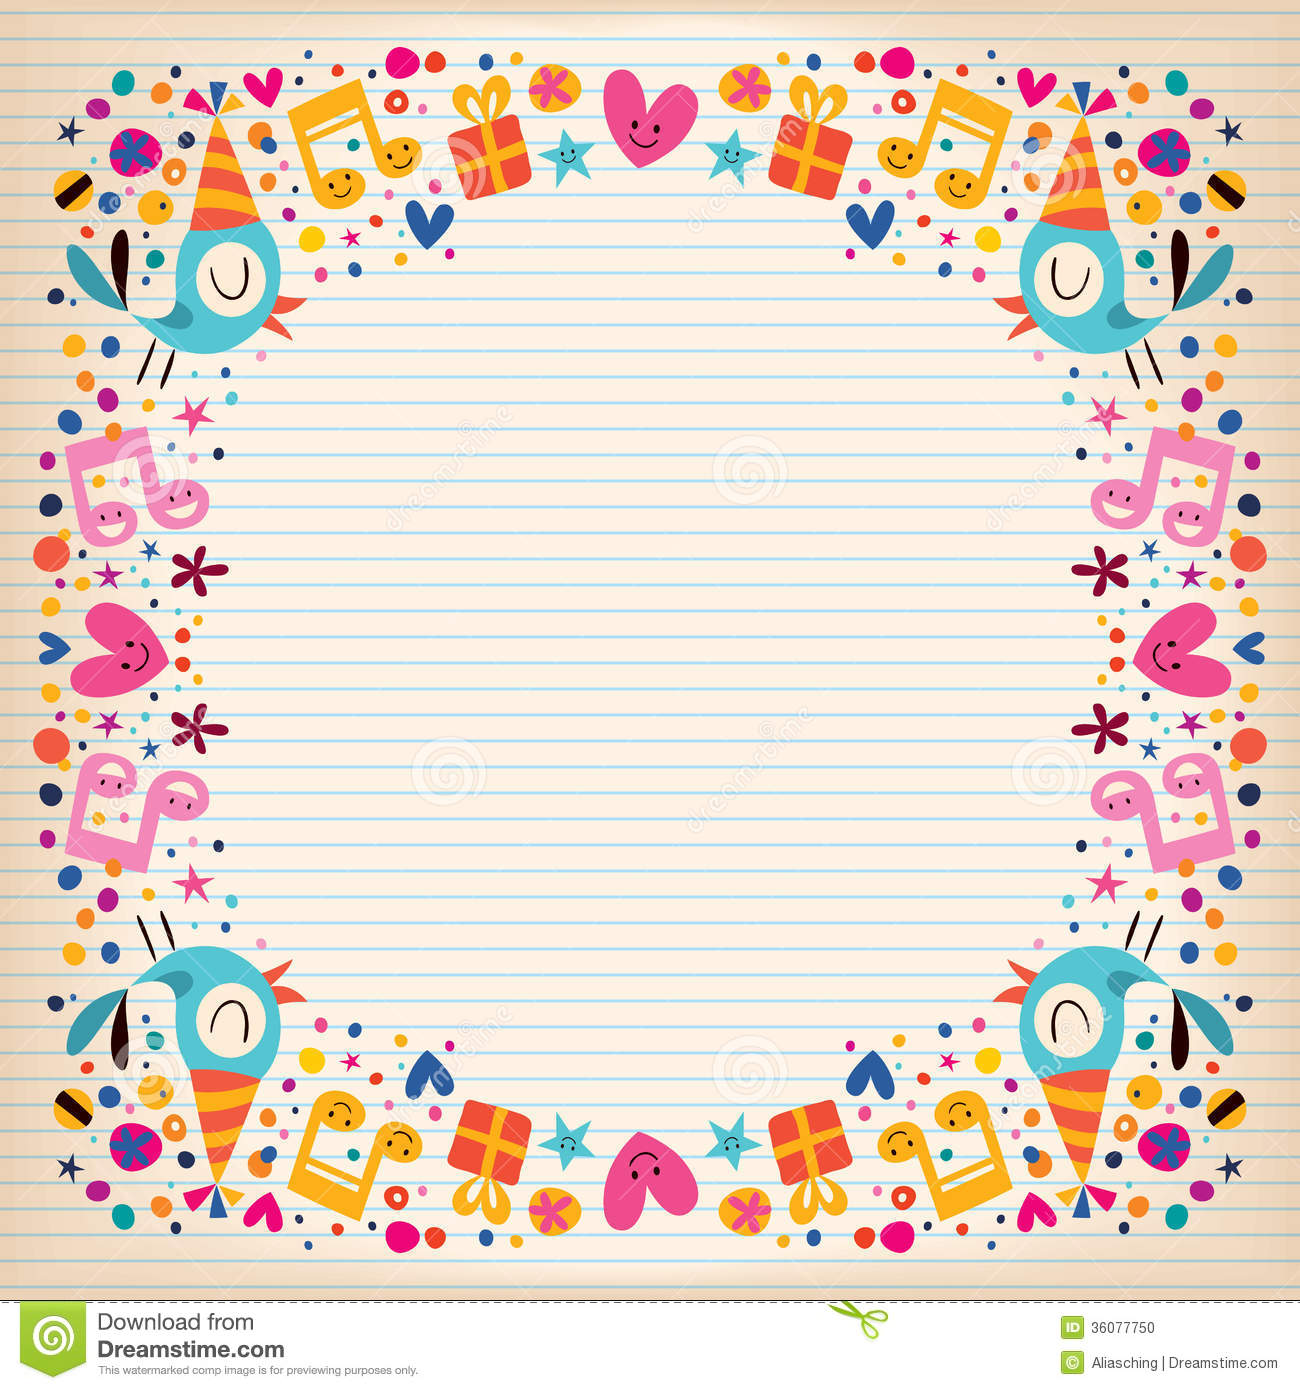 birthday card borders ; happy-birthday-border-lined-paper-card-cute-characters-36077750